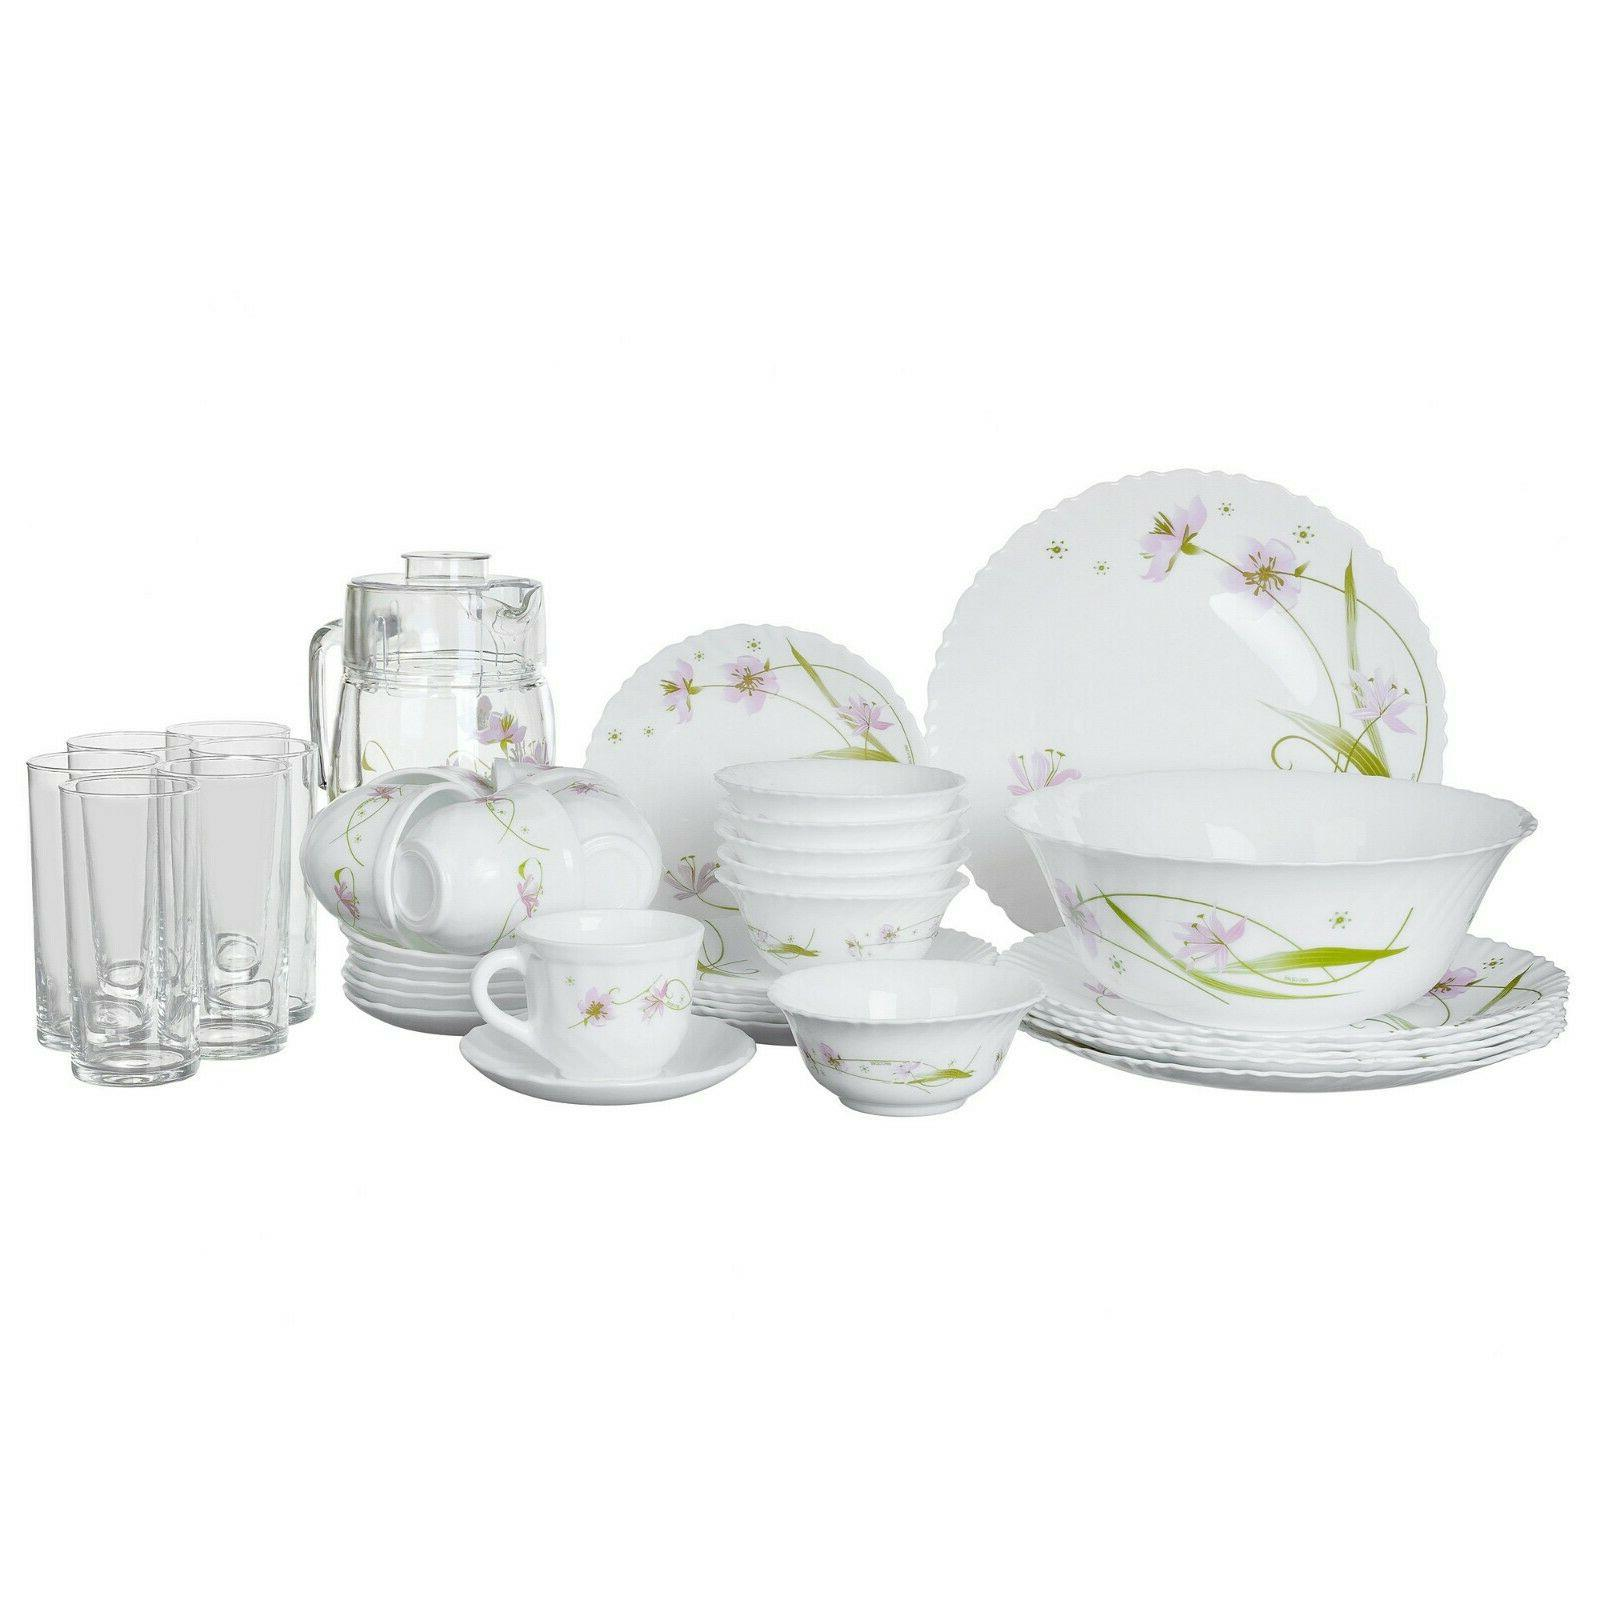 Luminarc Arcopal Selma 39 pc Glass Dinnerware Service / Tea